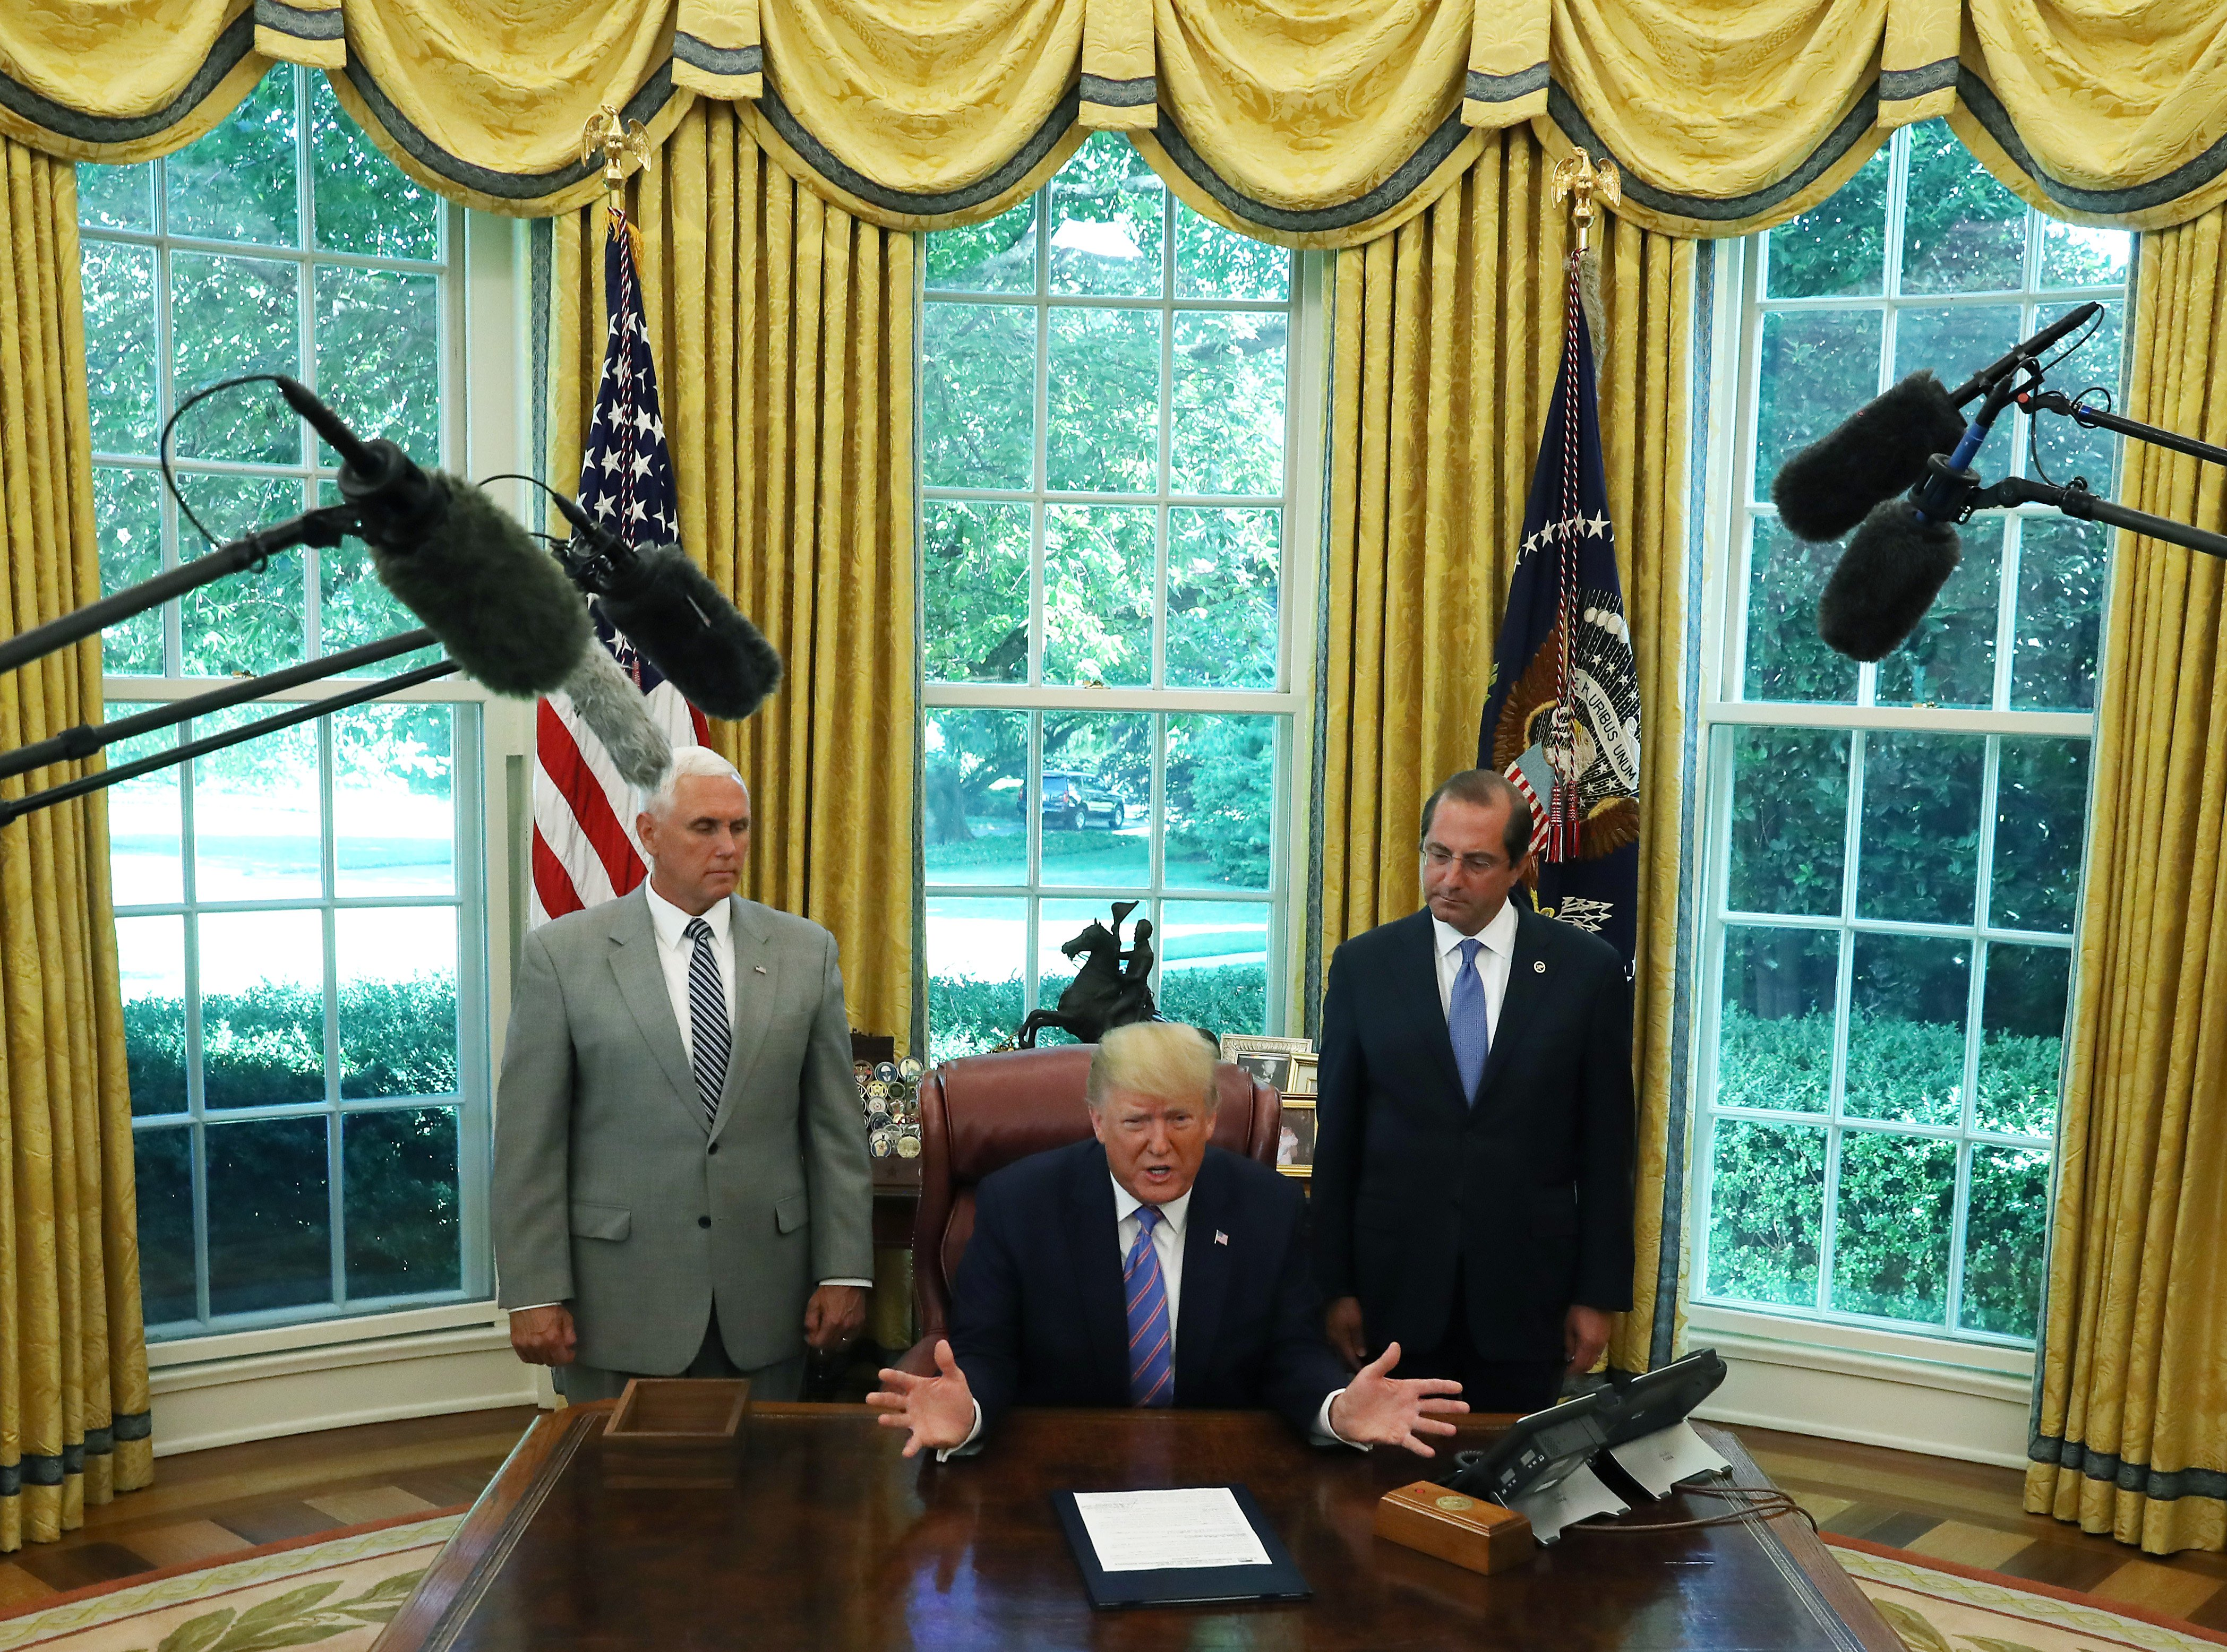 WASHINGTON, DC - JULY 01: US President Donald Trump speaks to the media after signing a bill for border funding legislation while flanked by Vice President Mike Pence (L) and Health and Human Services (HHS) Secretary Alex Azar (R) in the Oval Office at the White House on July 1, 2019 in Washington, DC. (Photo by Mark Wilson/Getty Images)